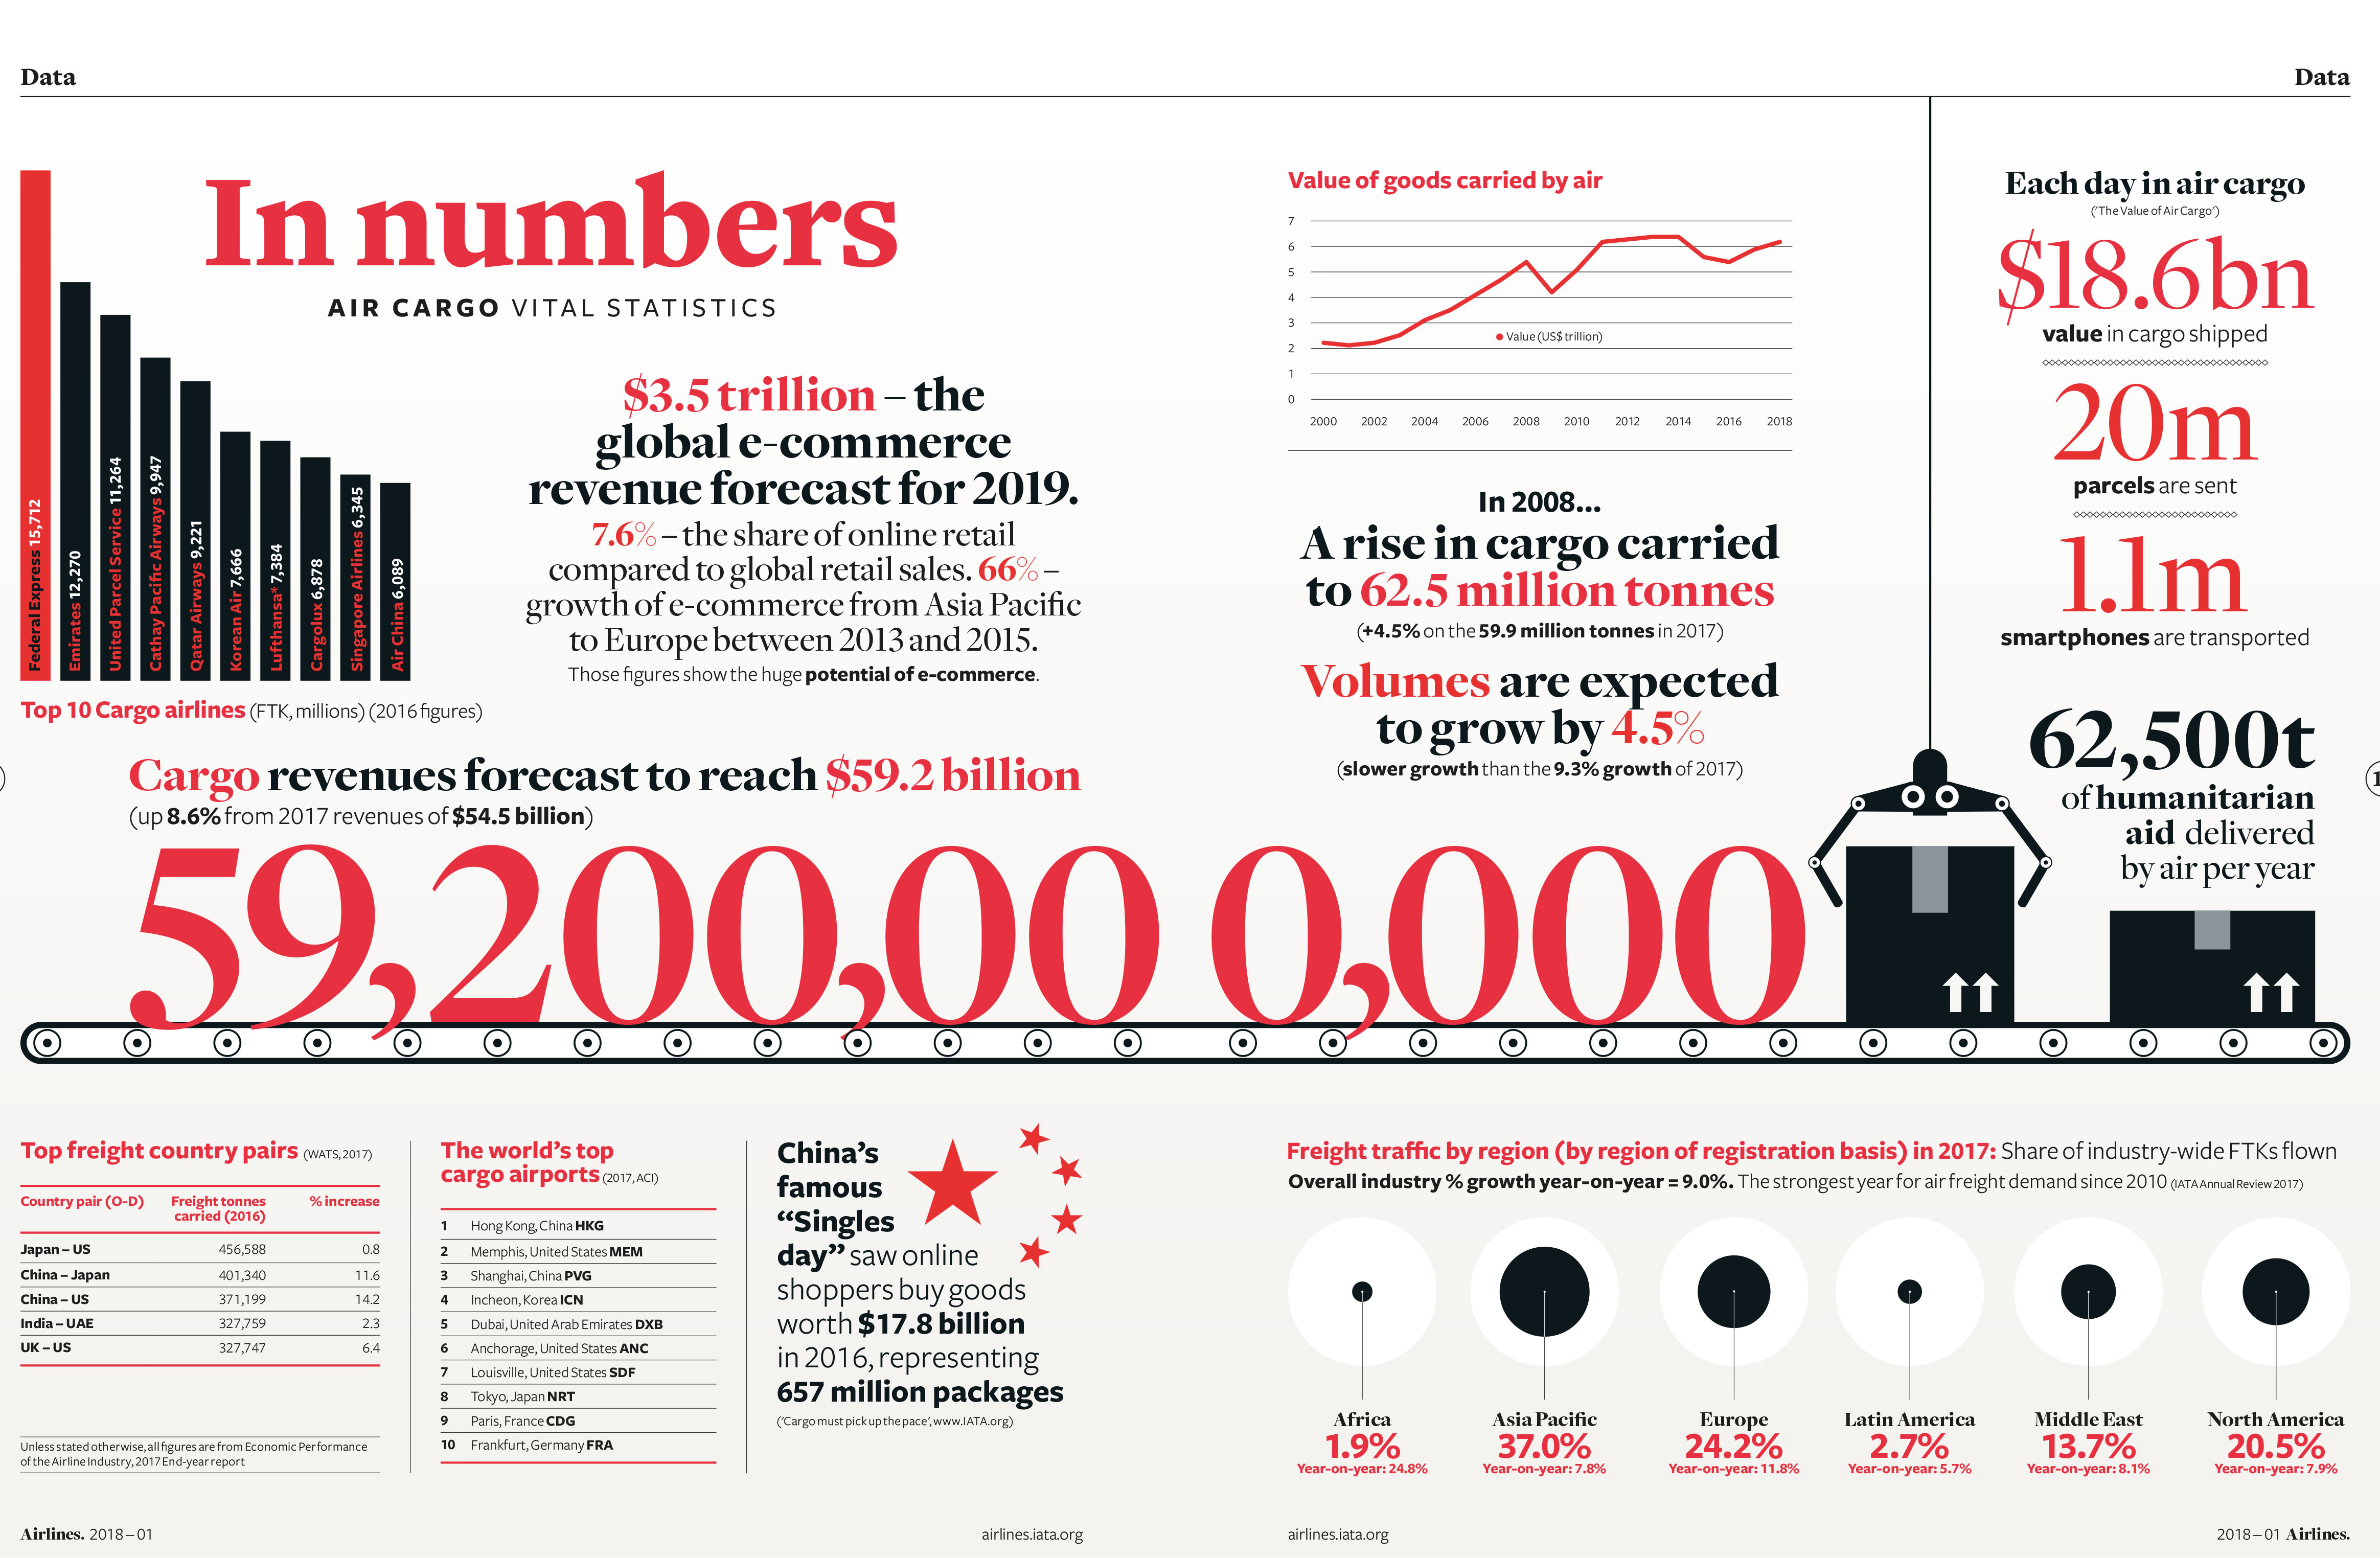 In numbers: Air cargo